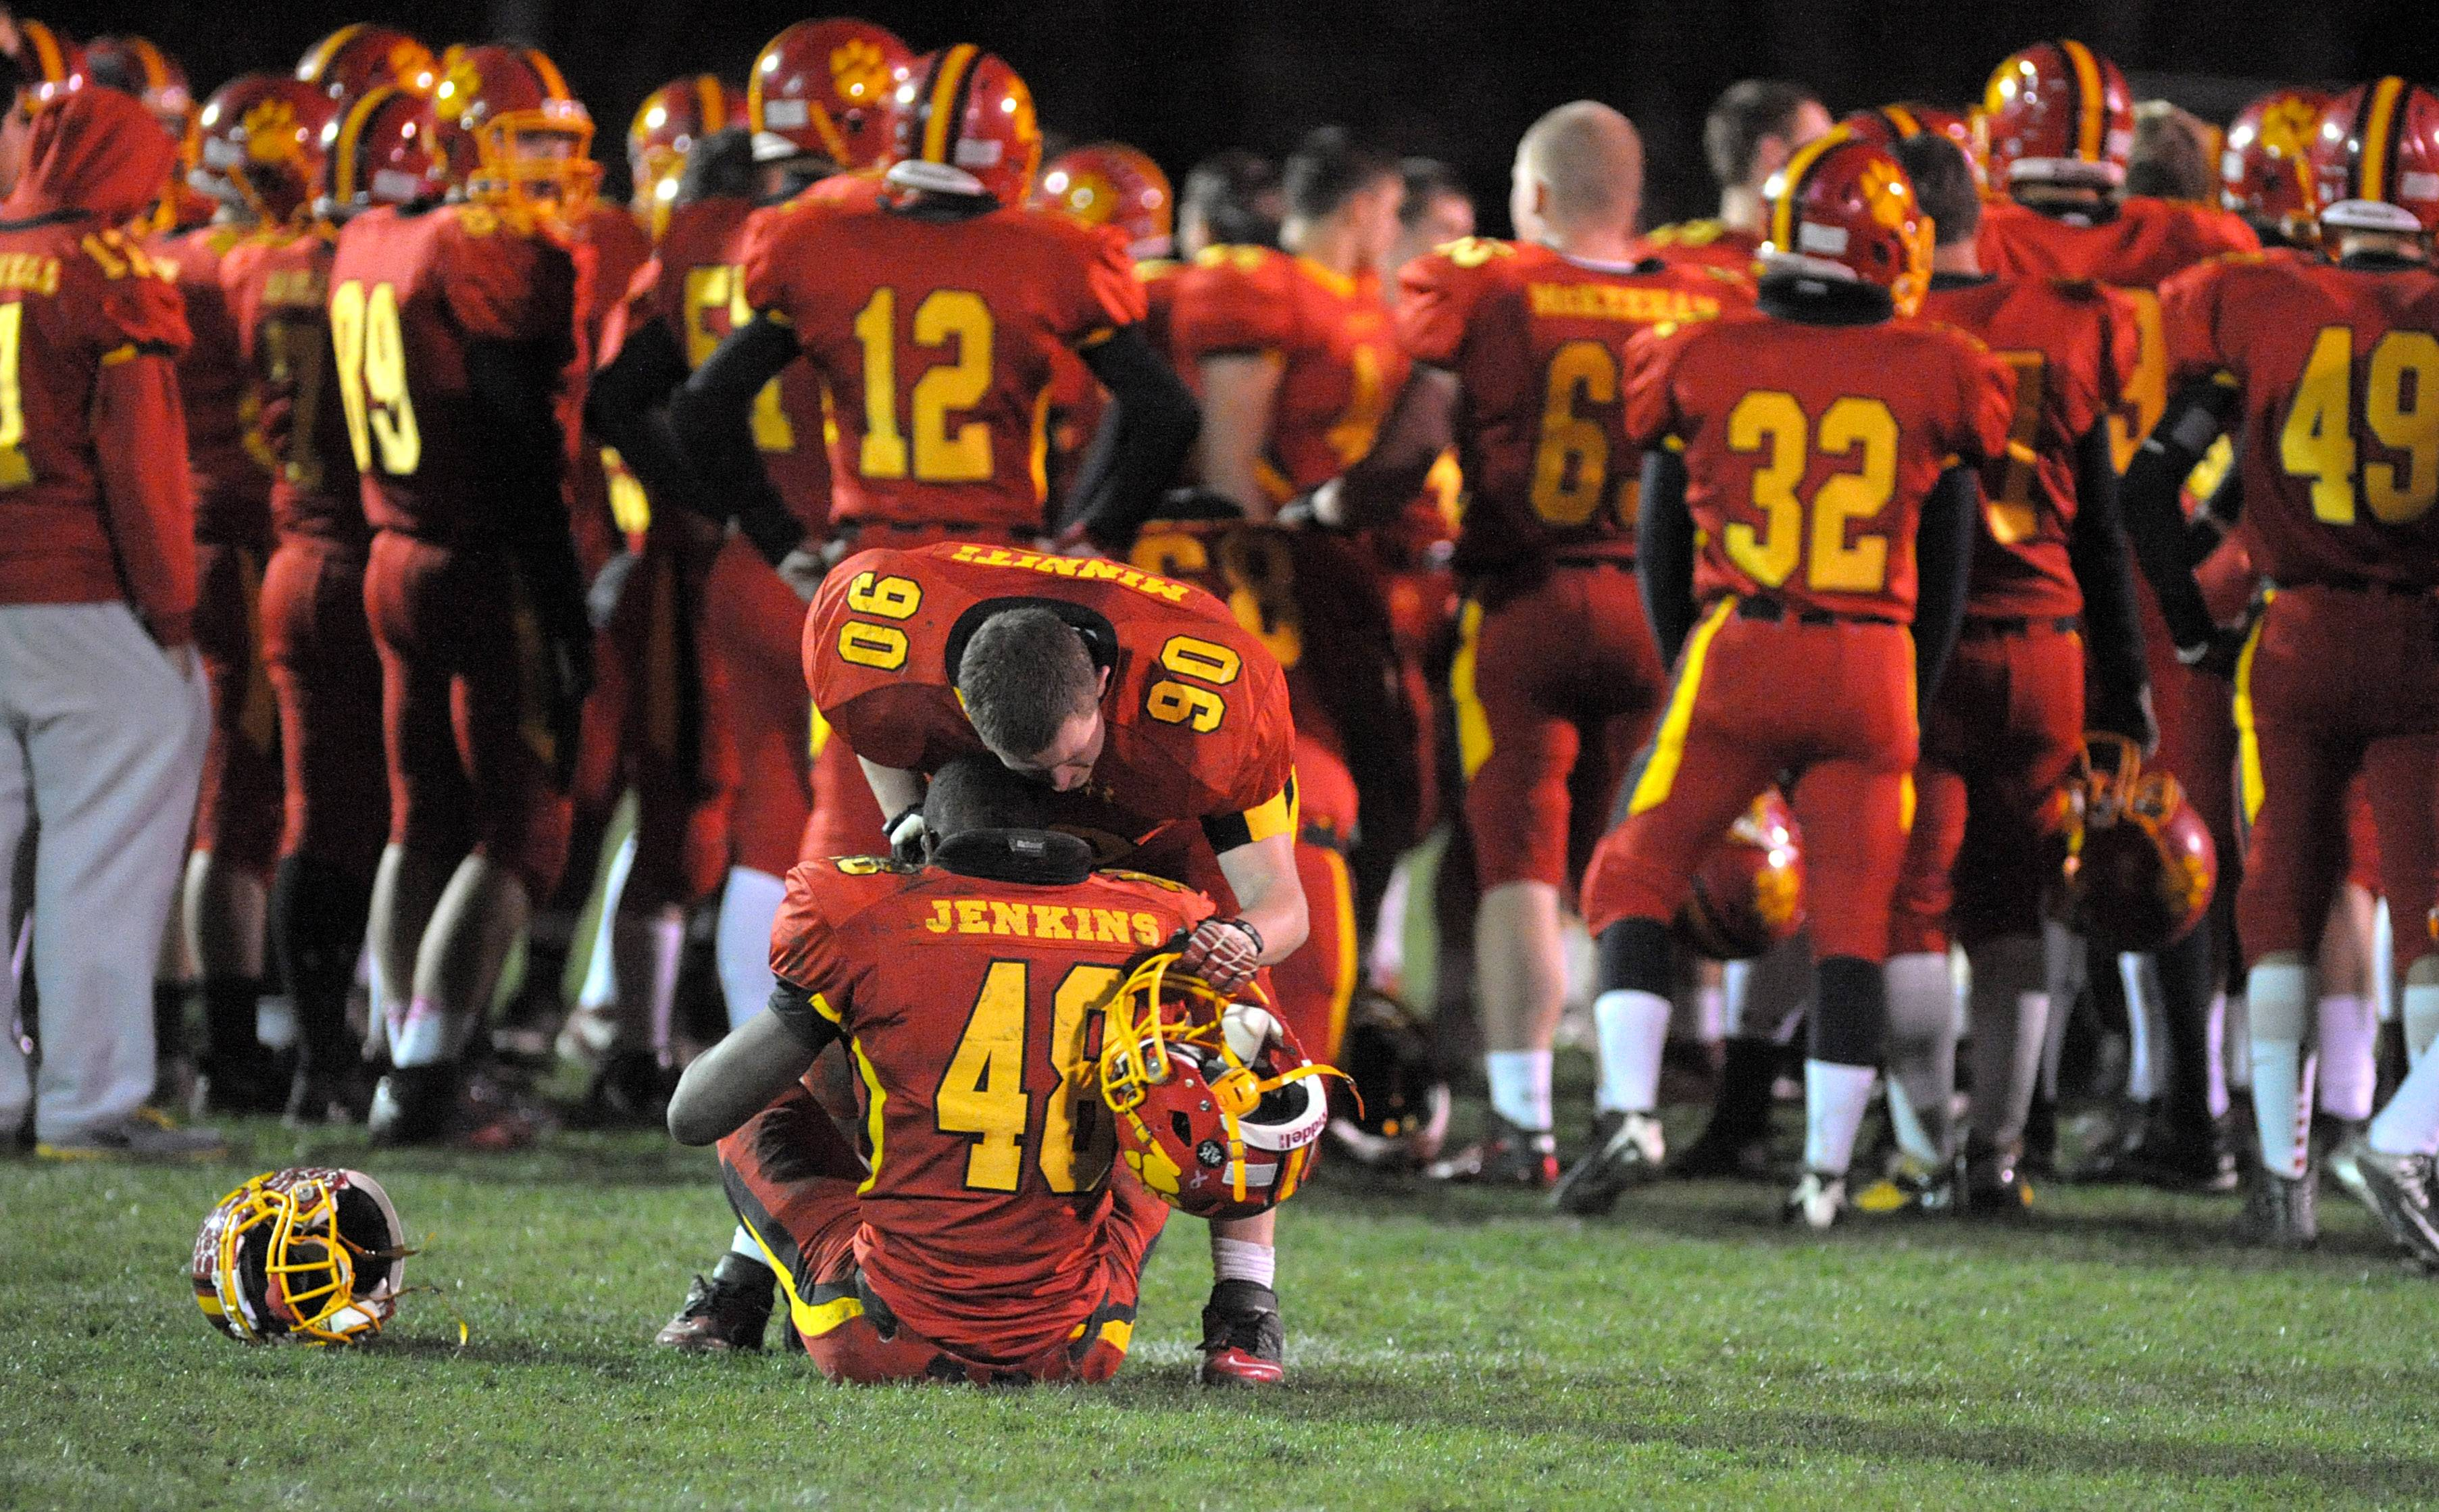 The Batavia Bulldogs hosted the Trojans of Downers Grove North in weeek one of the IHSA football playoffs Friday night in Batavia. Downers Grove North beat Batavia 38-26.